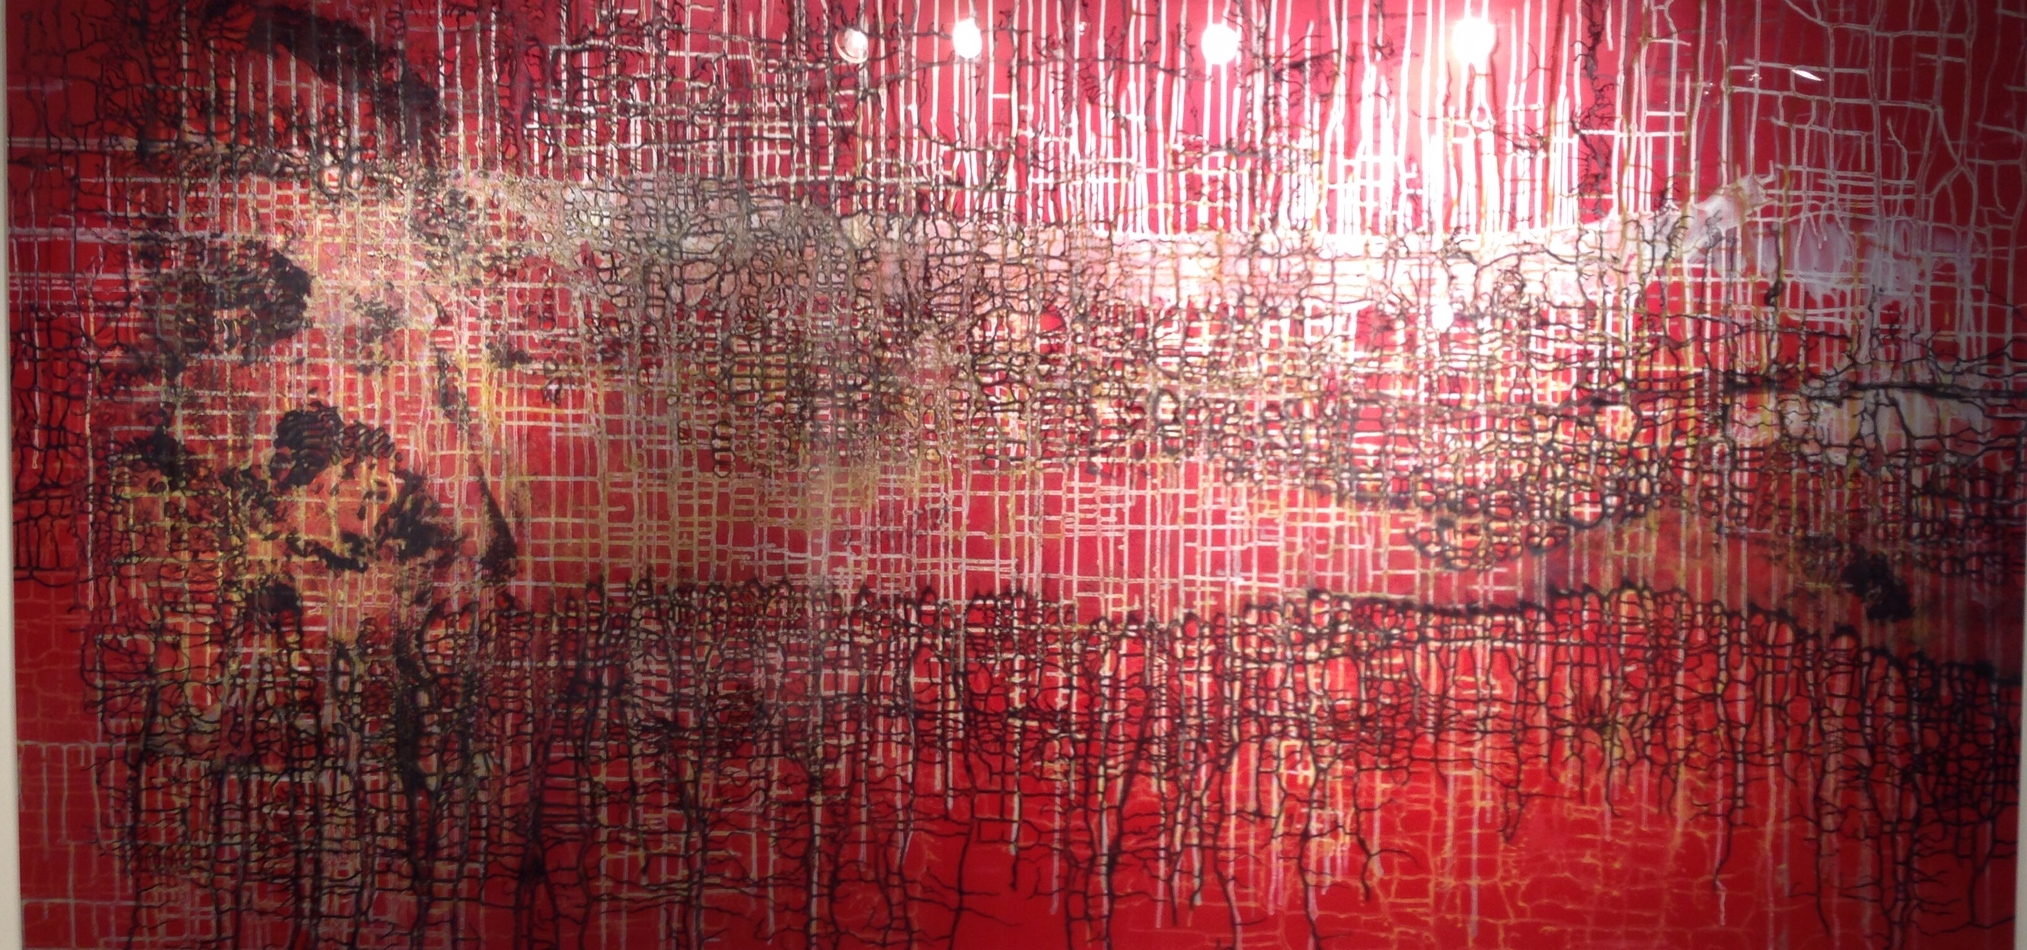 48 X 96 inches